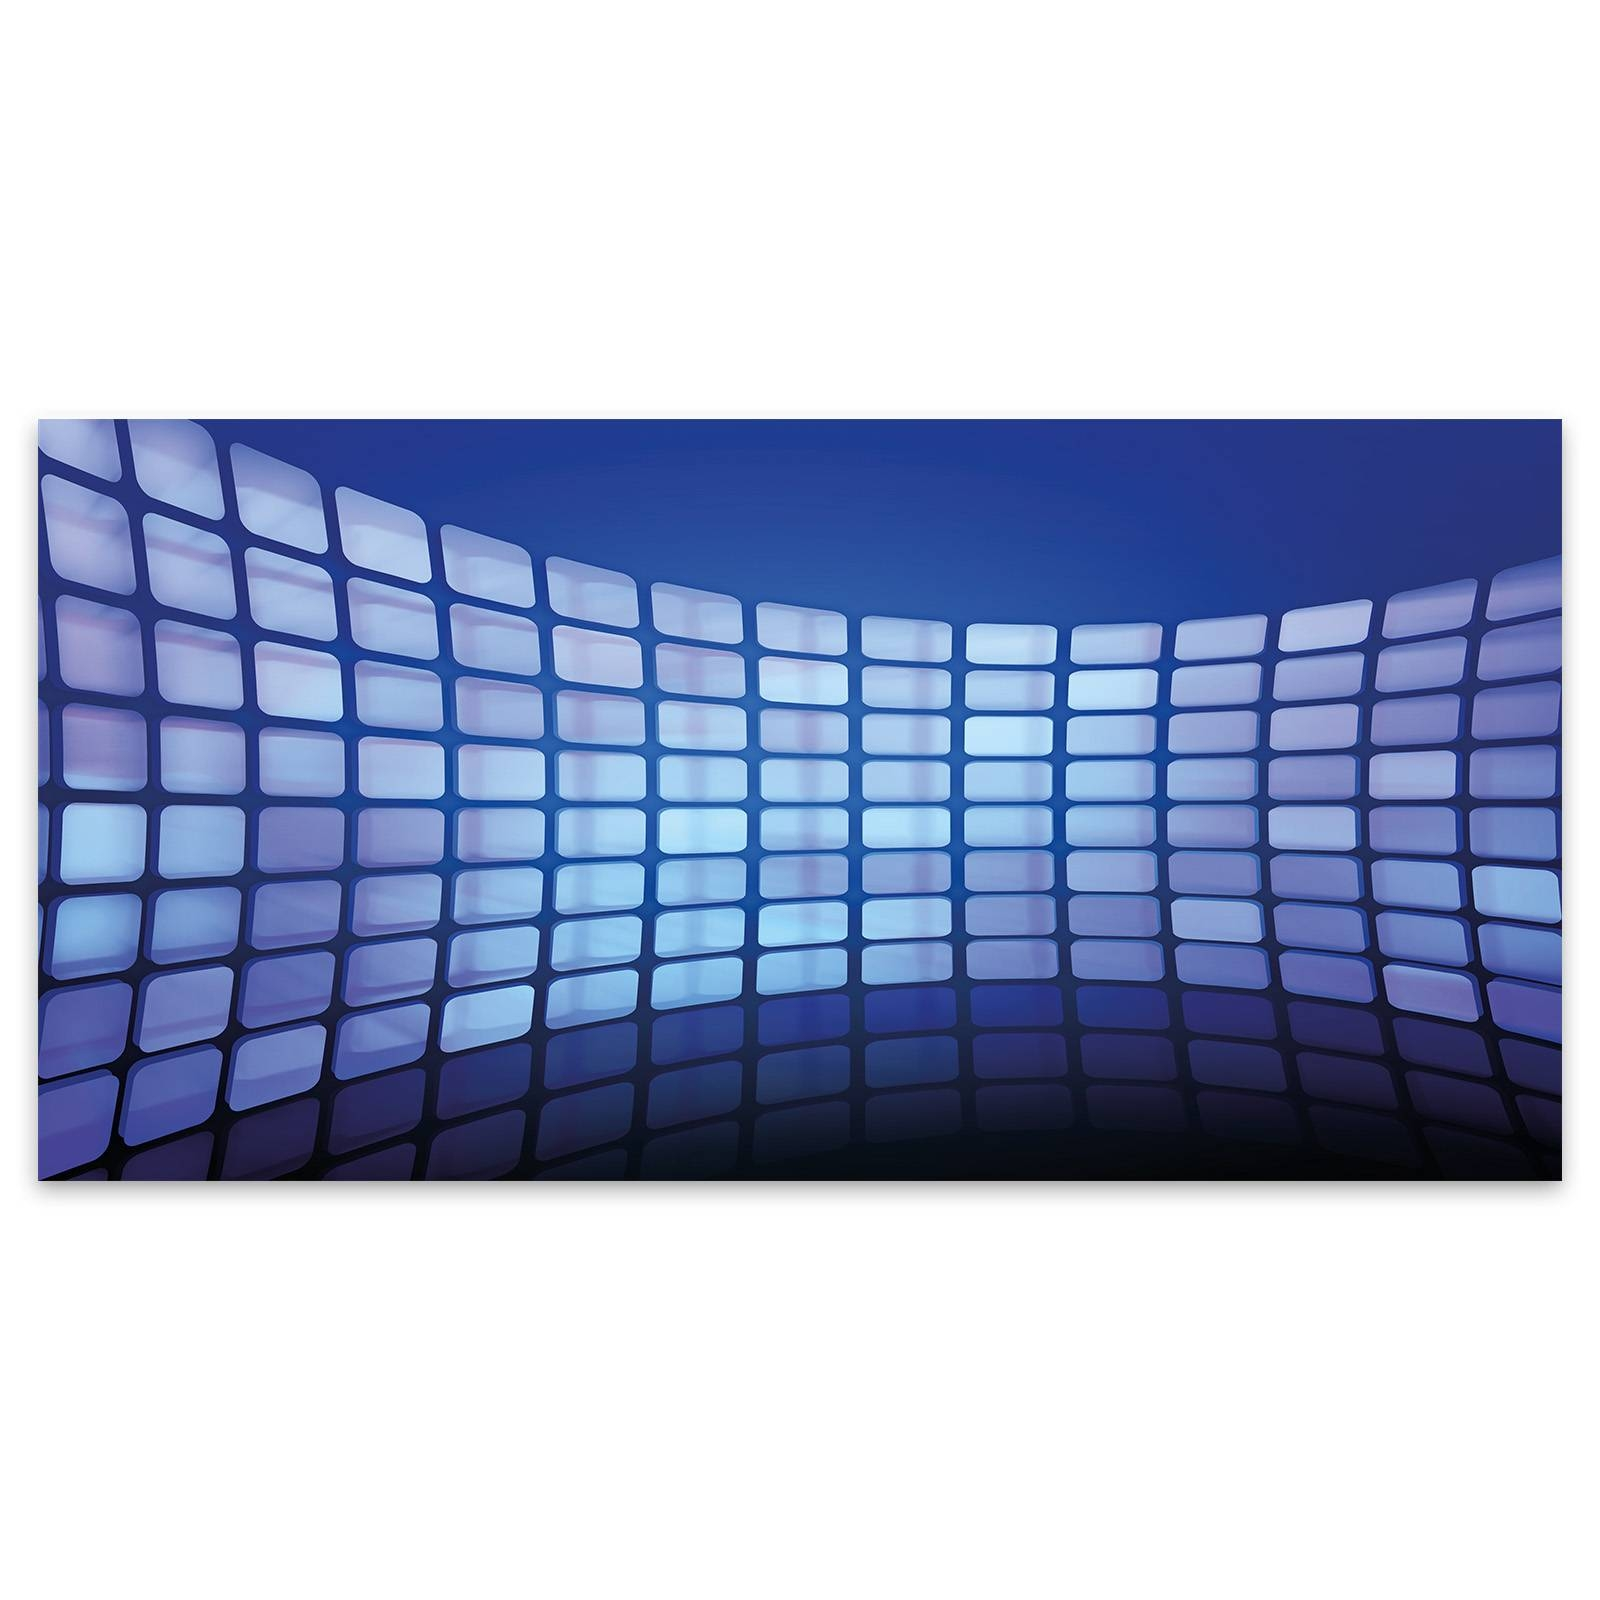 Extra Large Abstract 3d Blue Shiny Blocks Acrylic Glass Wall Art Throughout 2018 3d Glass Wall Art (Gallery 13 of 20)